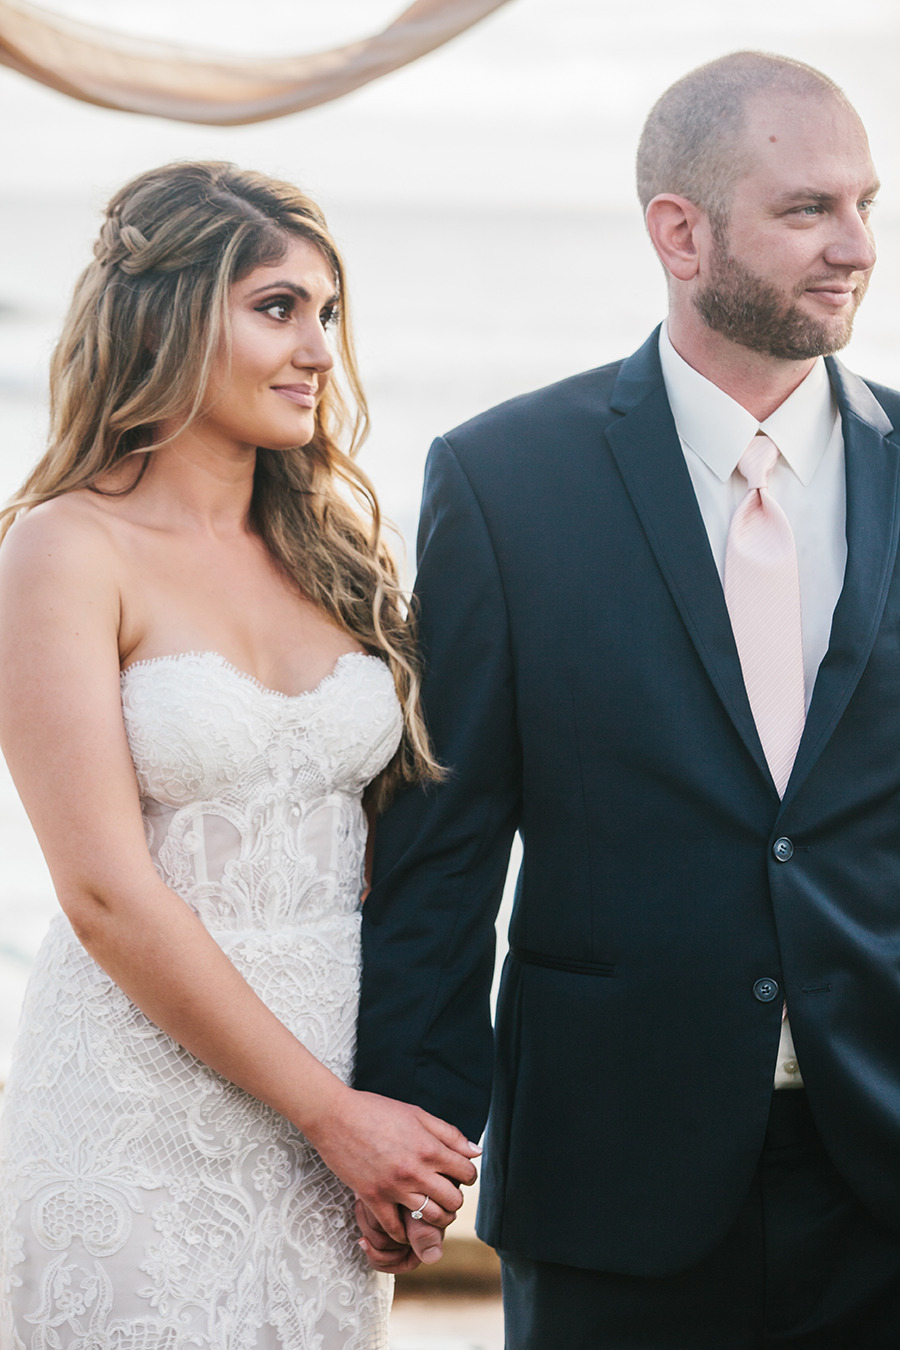 Destination Wedding Ceremony in Hawaii with a Made With Love Bridal Wedding Dress